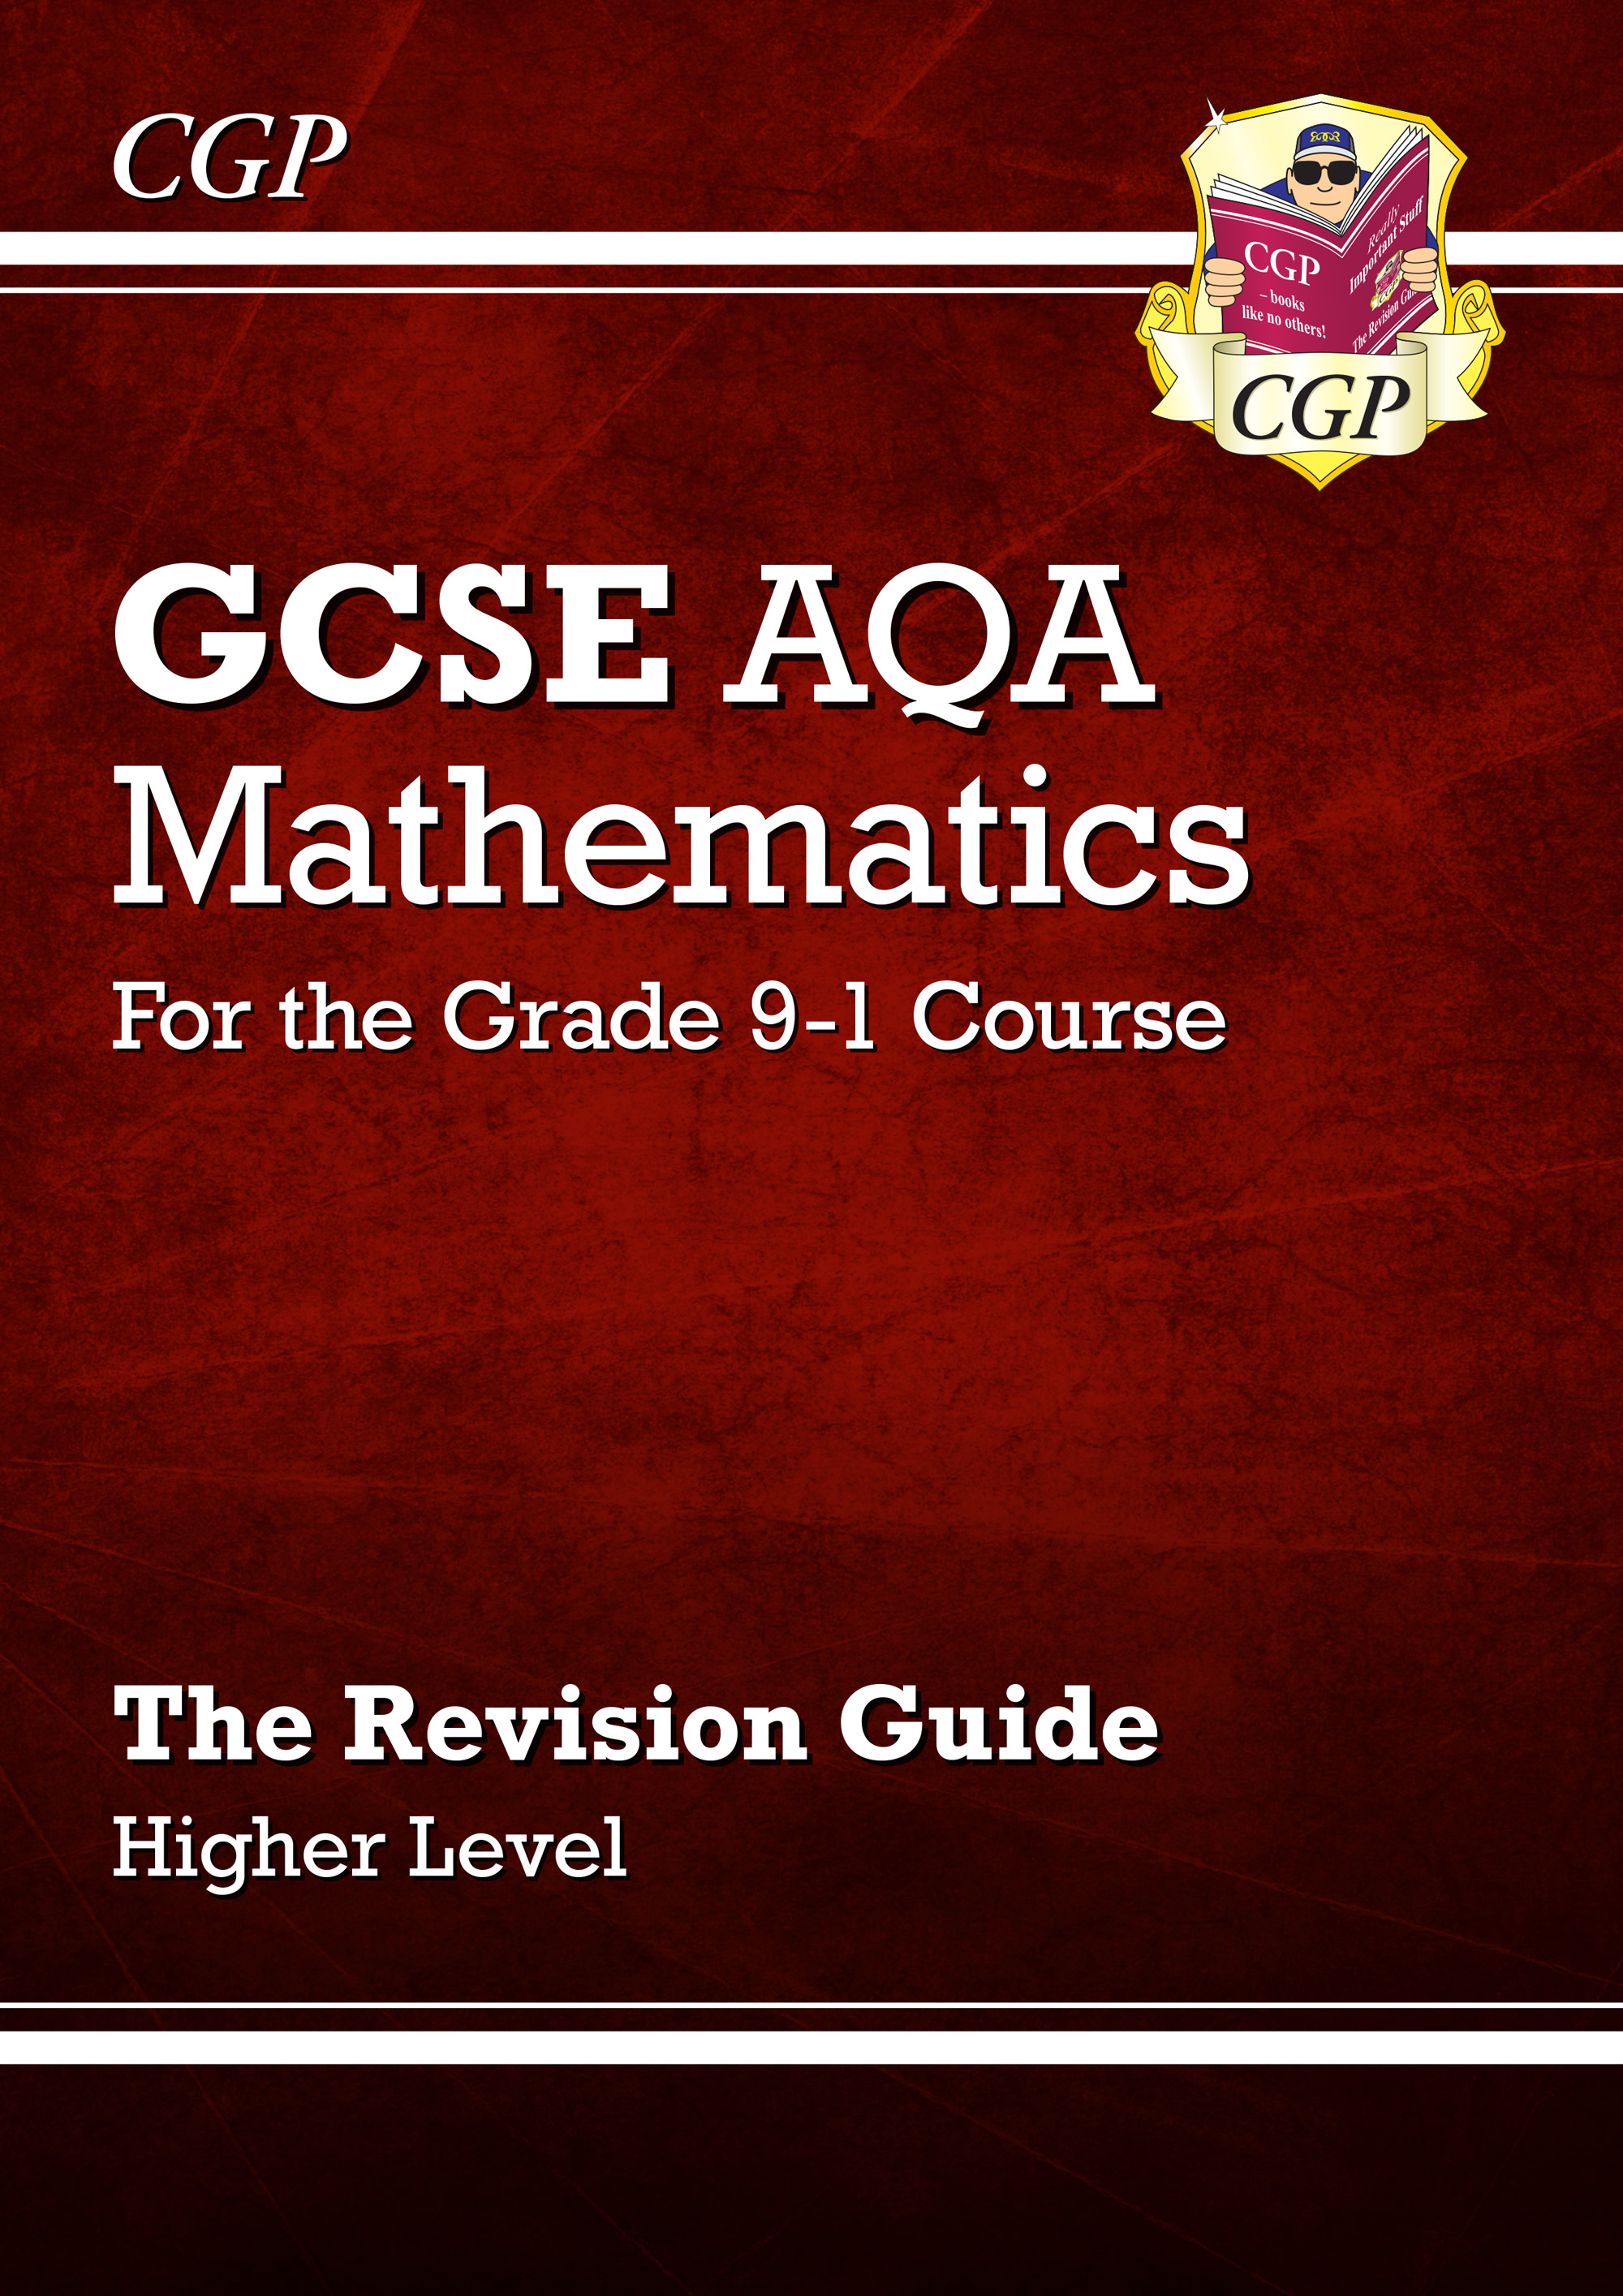 MQHR46D - GCSE Maths AQA Revision Guide: Higher - for the Grade 9-1 Course (Online Edition)